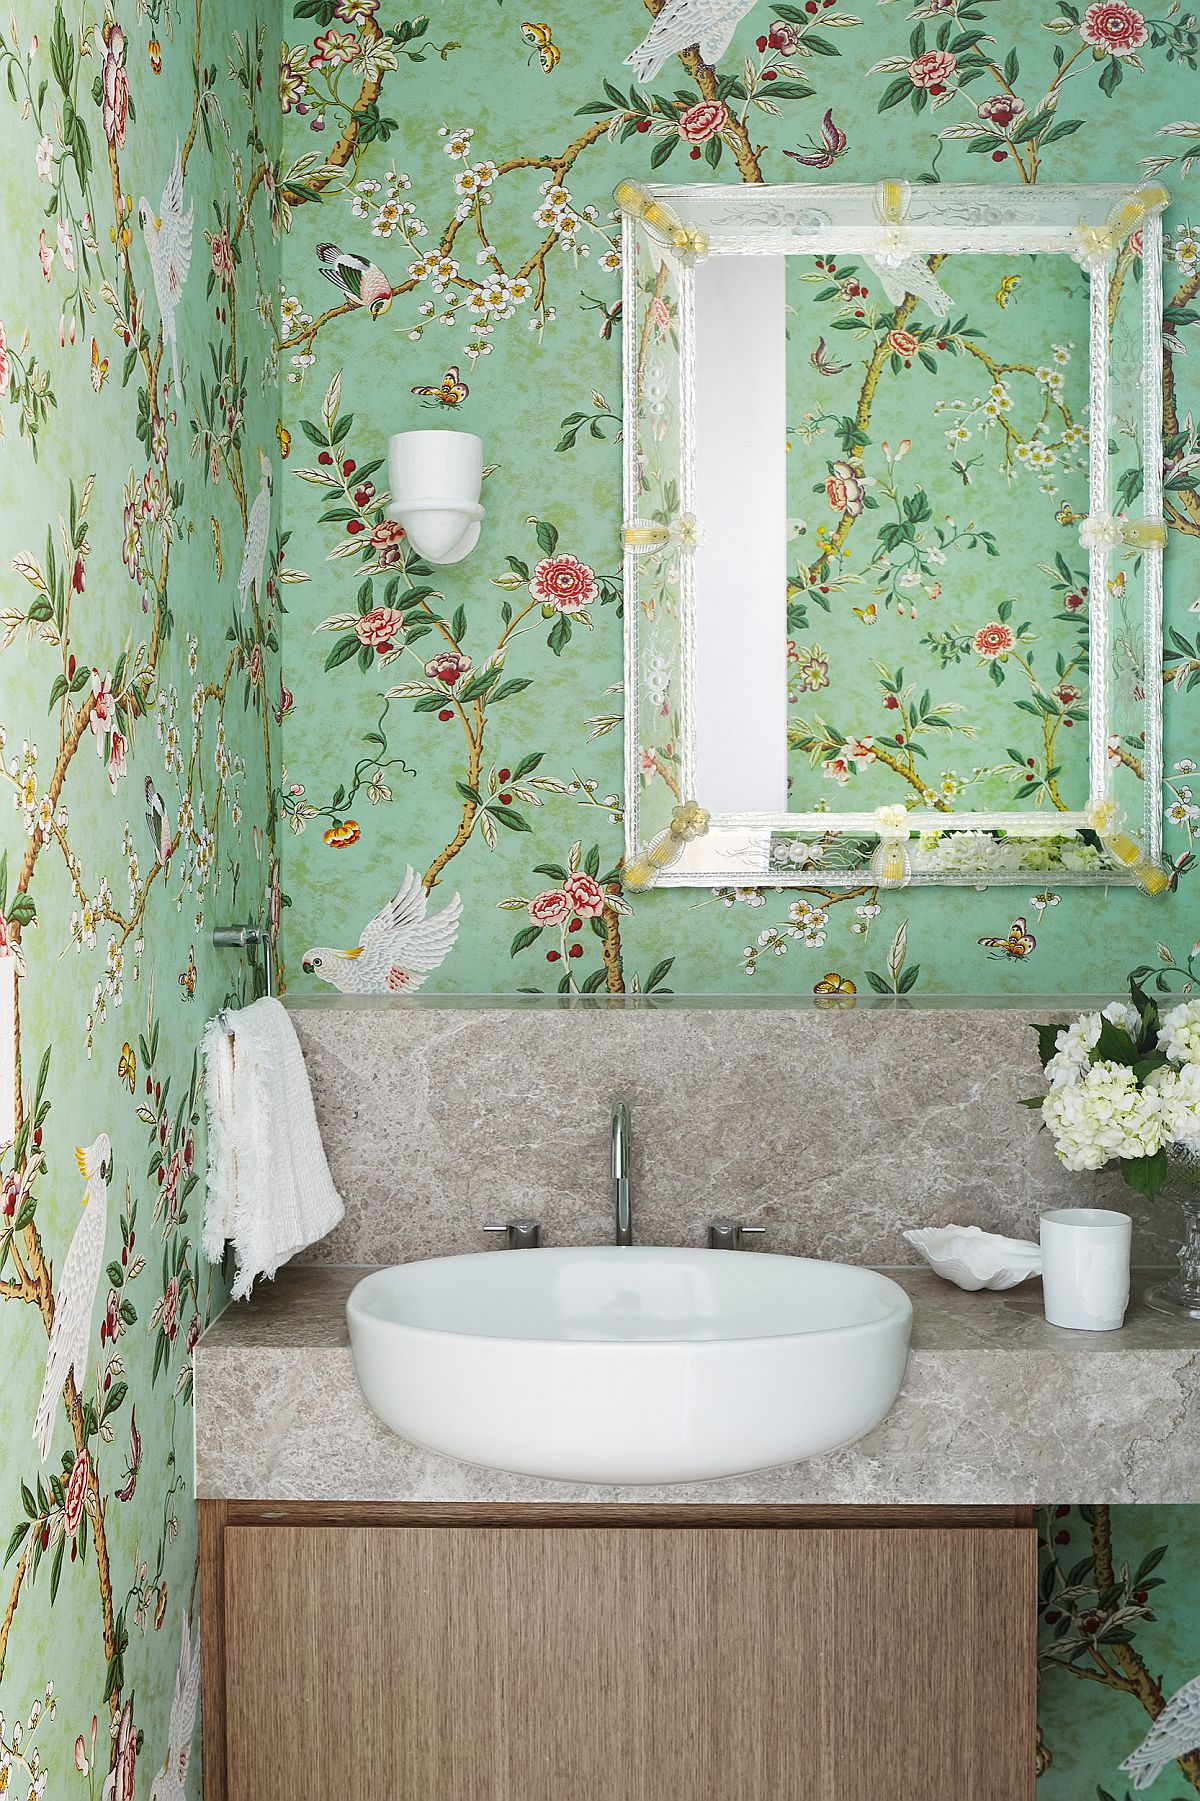 Use wallpaper with nature-inspired themes to add light green to the powder room